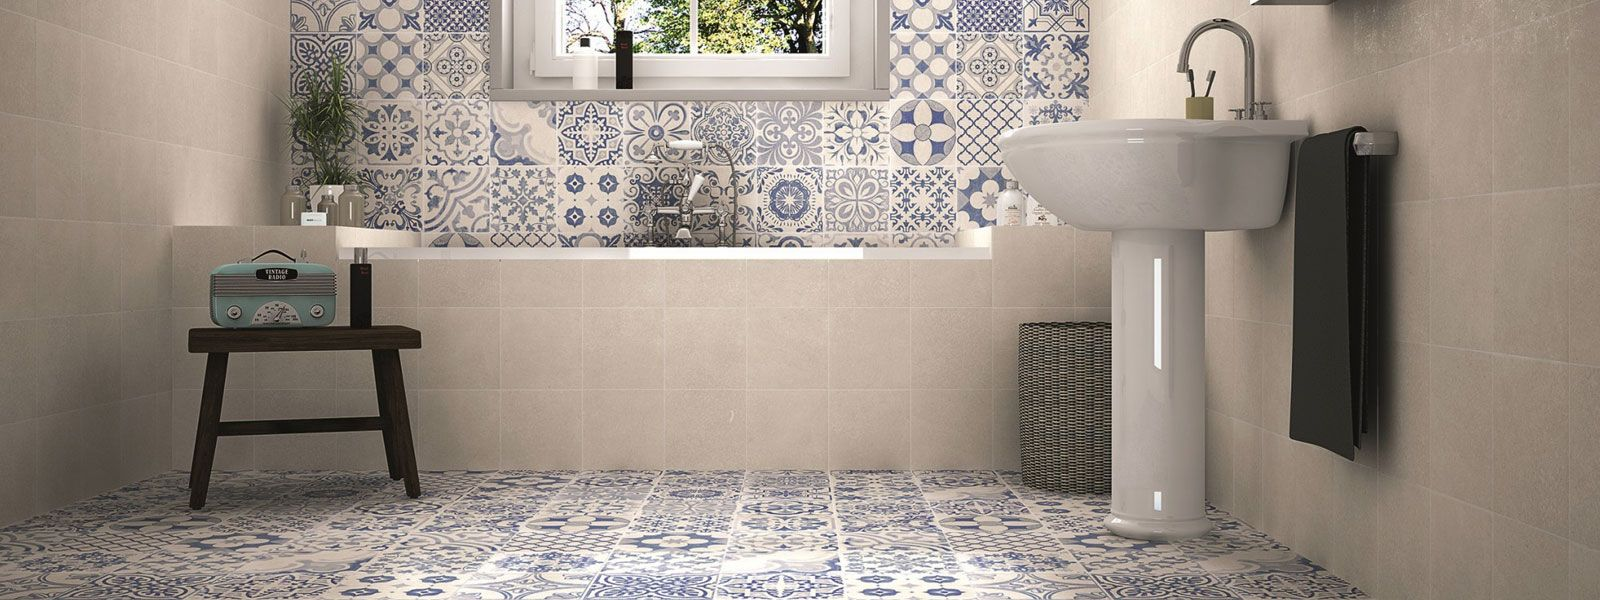 Gib tiling perth provide advice consulting and quotes to complete gib tiling perth provide advice consulting and quotes to complete all sorts of floor dailygadgetfo Choice Image